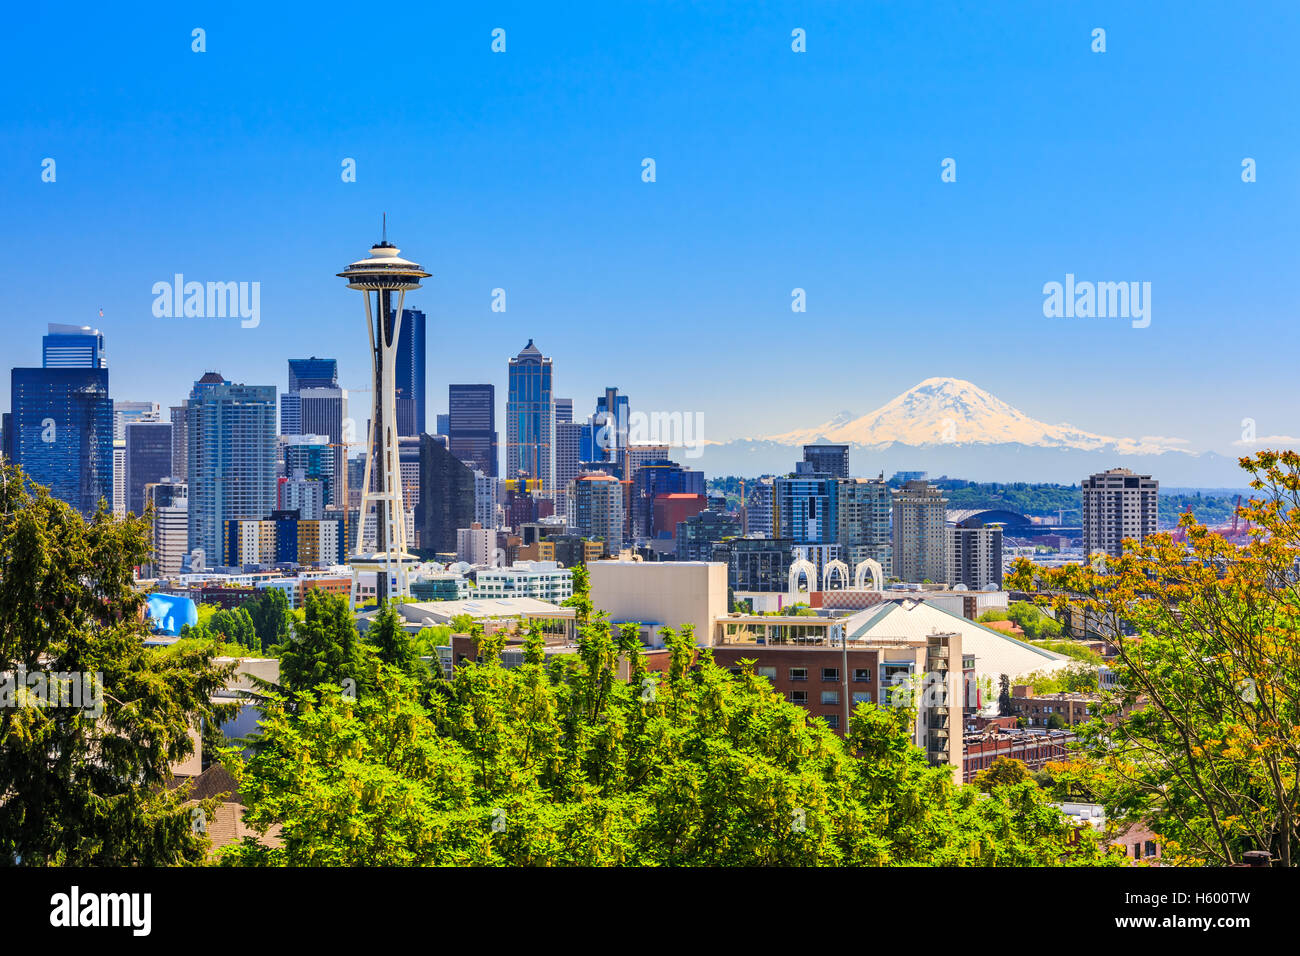 Seattle downtown. - Stock Image